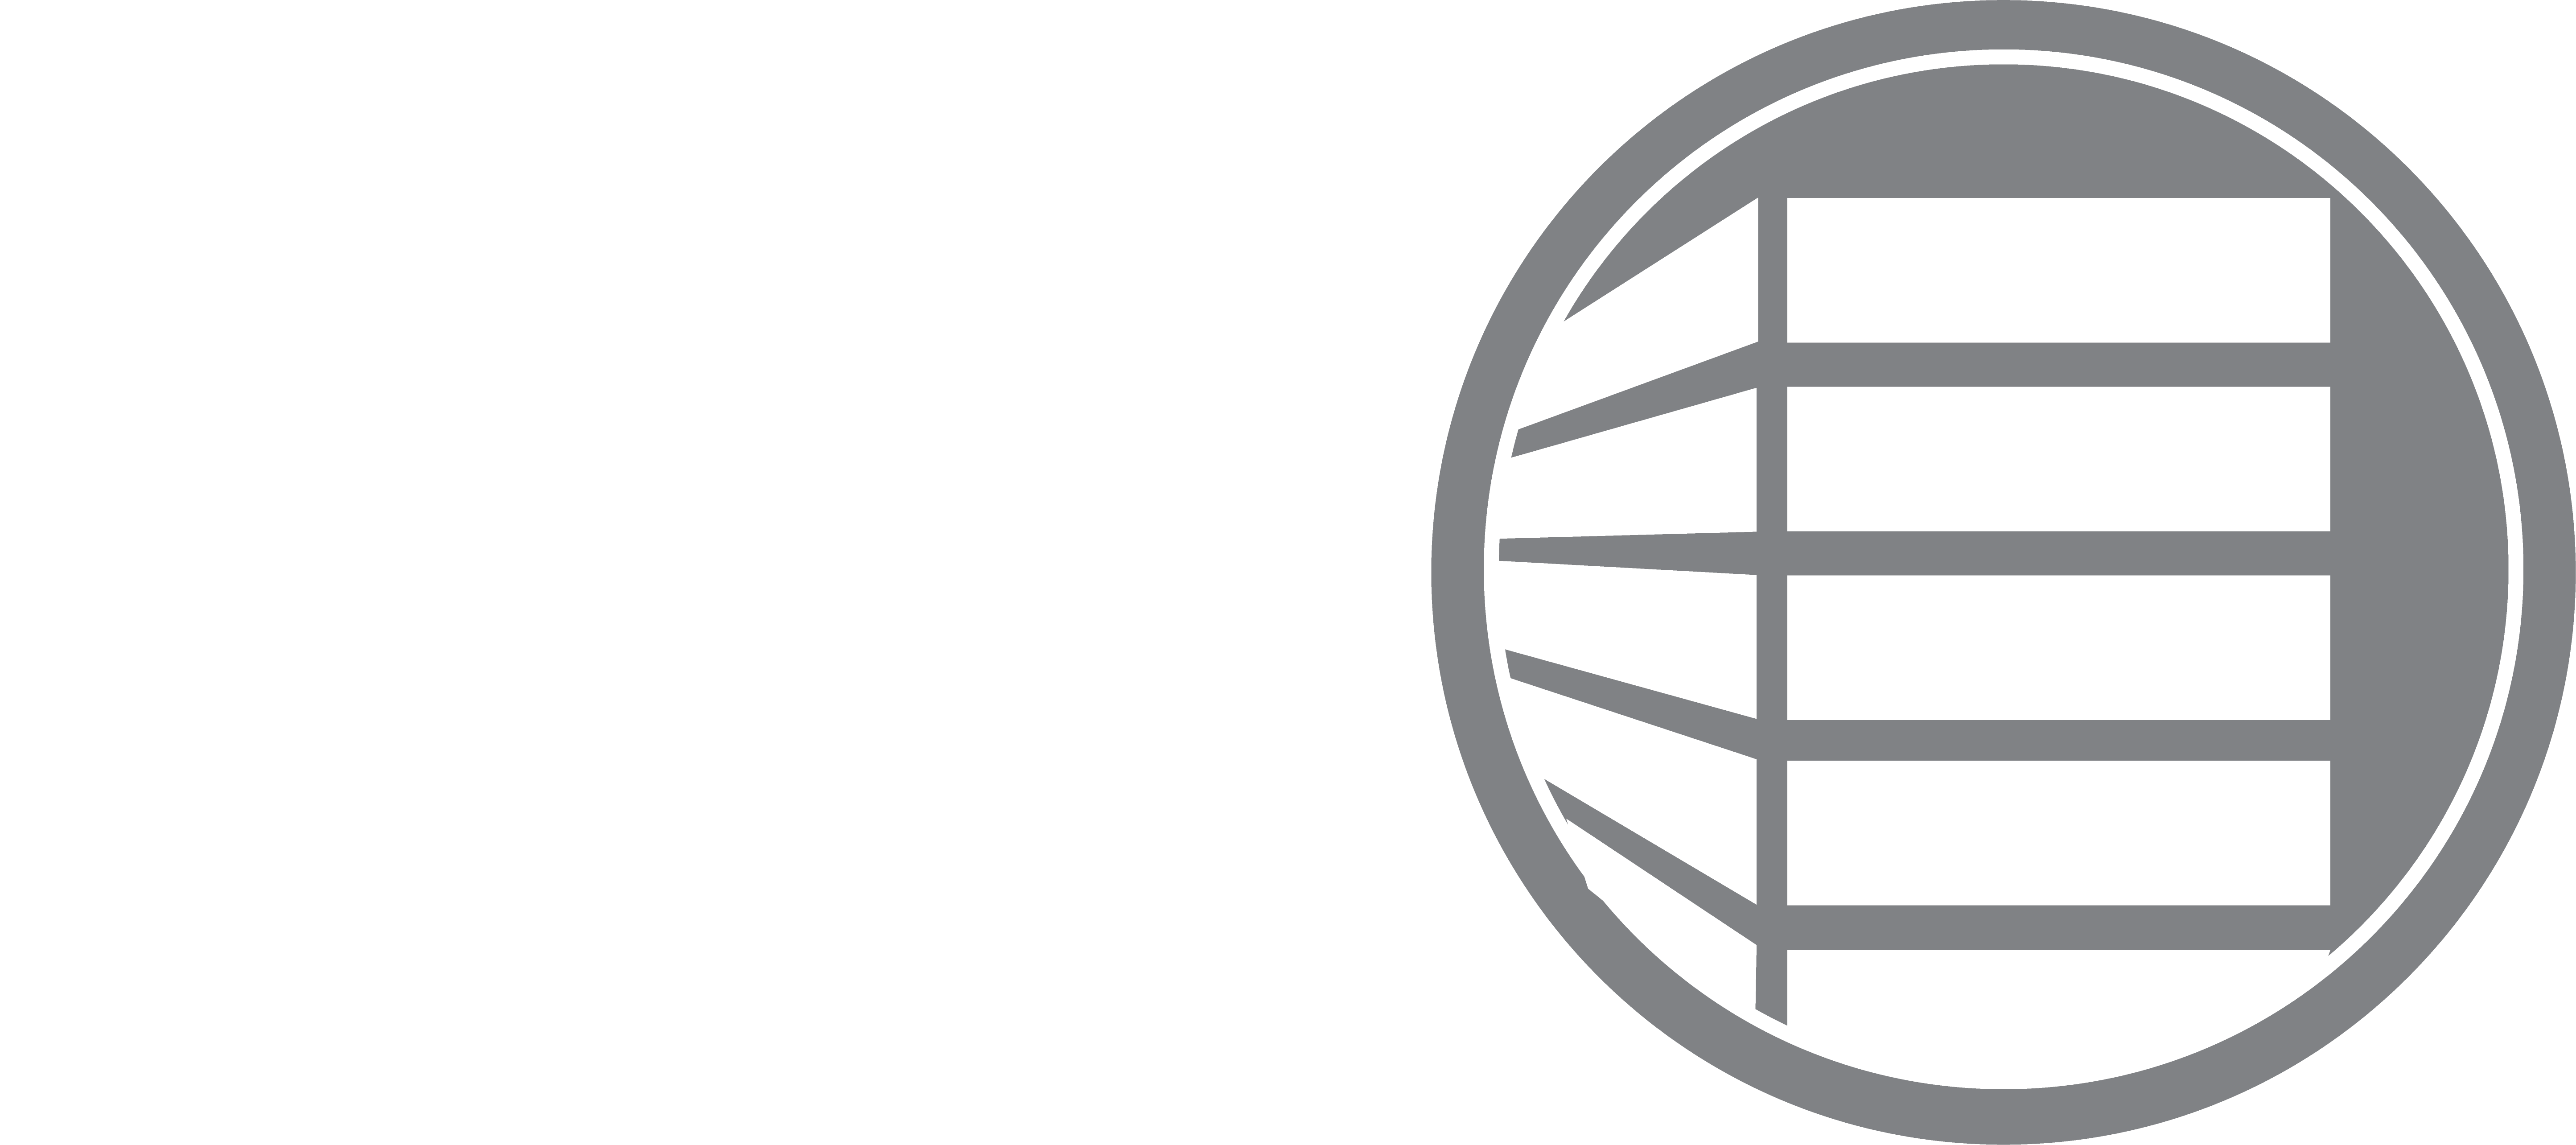 AFL-CIO Building Investment Trust - Construction Moves Above Ground